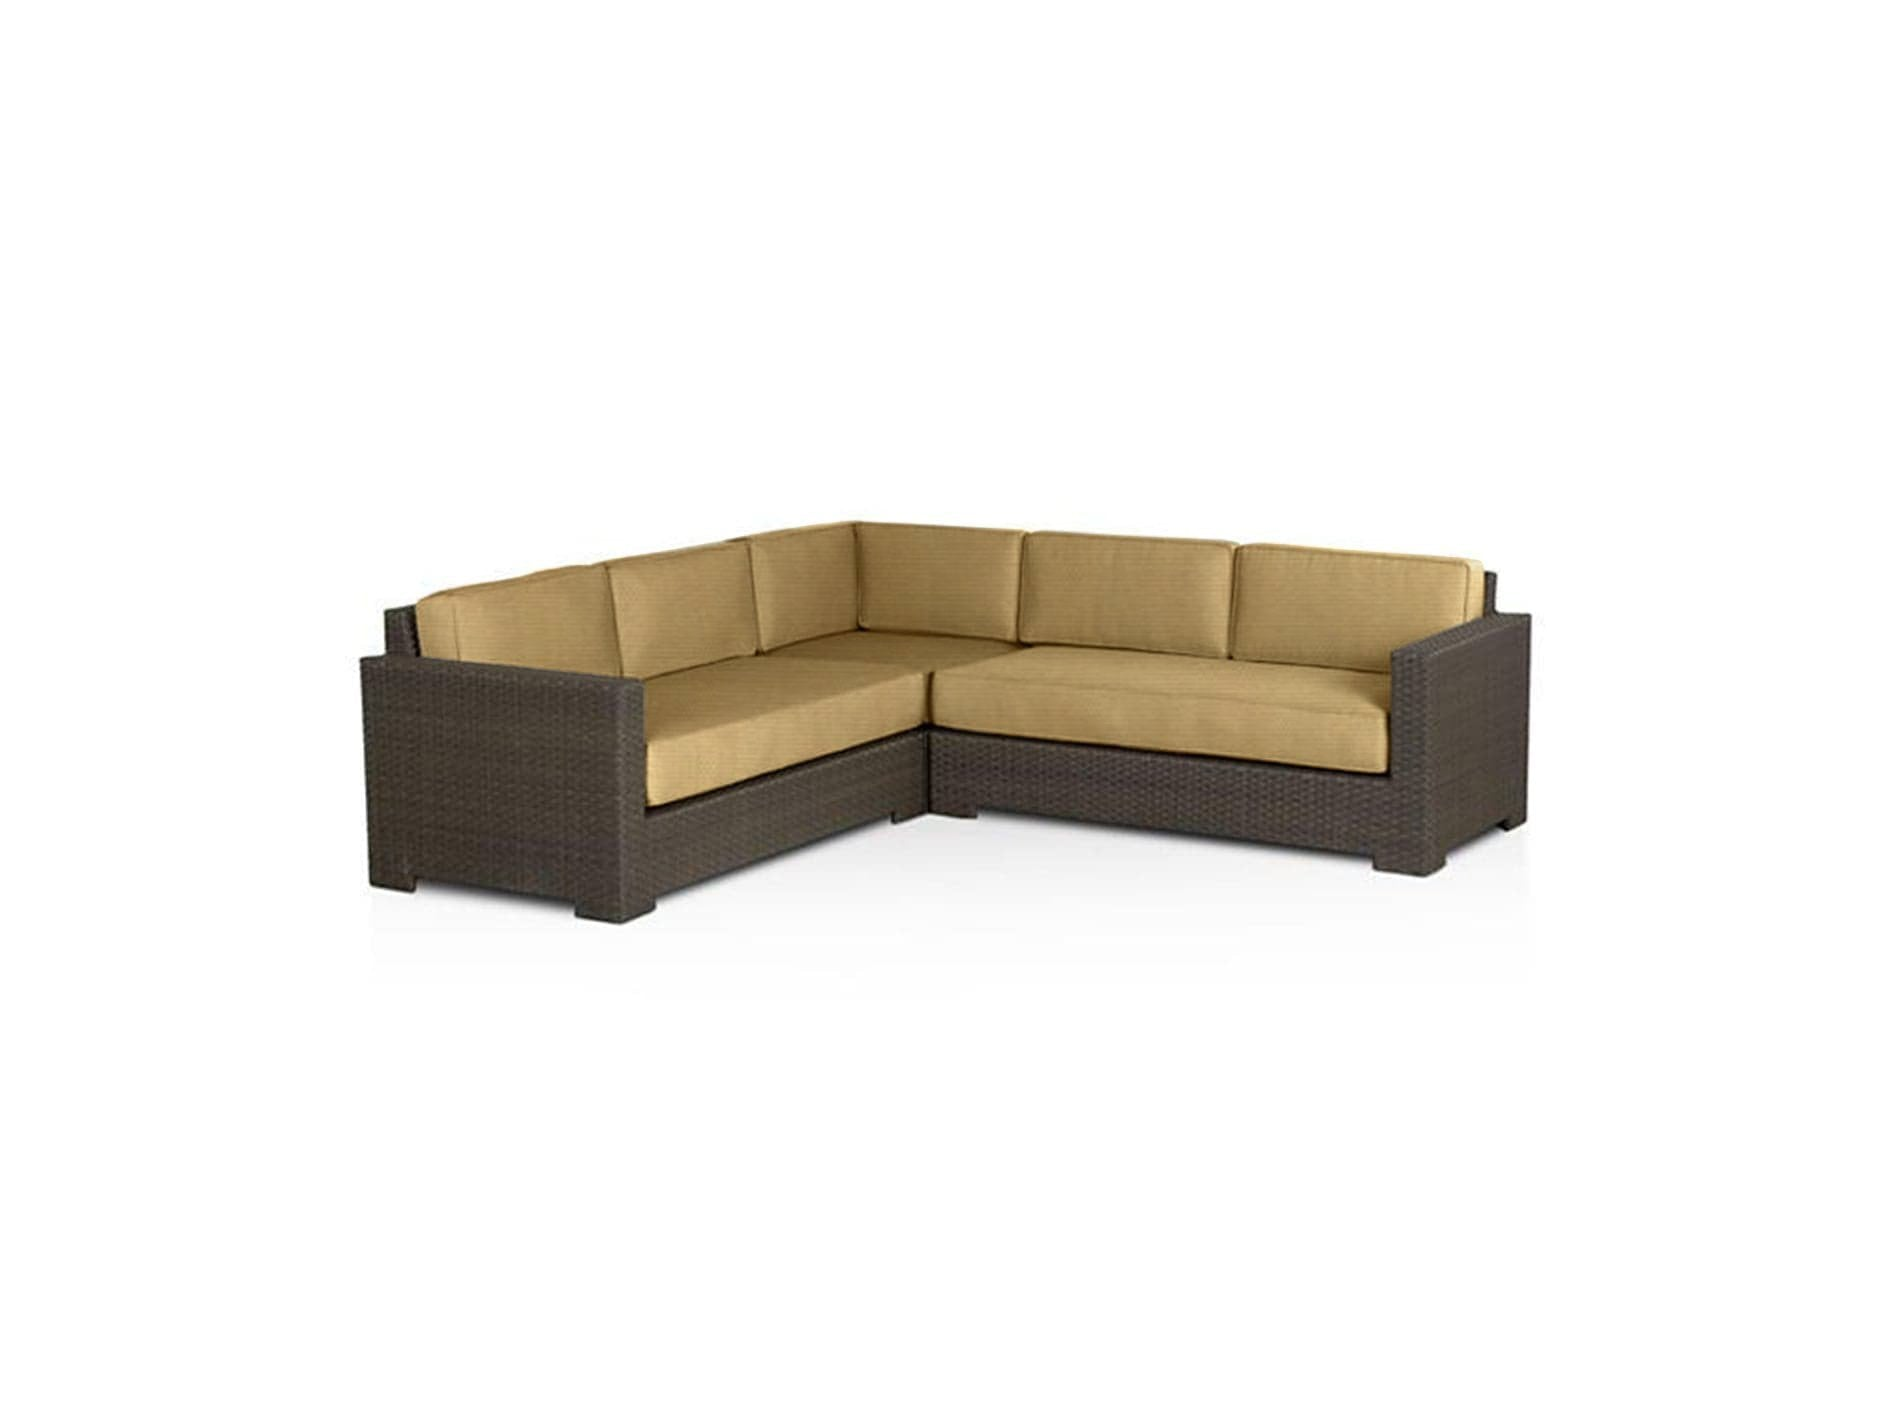 Sectional Outdoor Settings Replacement Cushions Complete Set